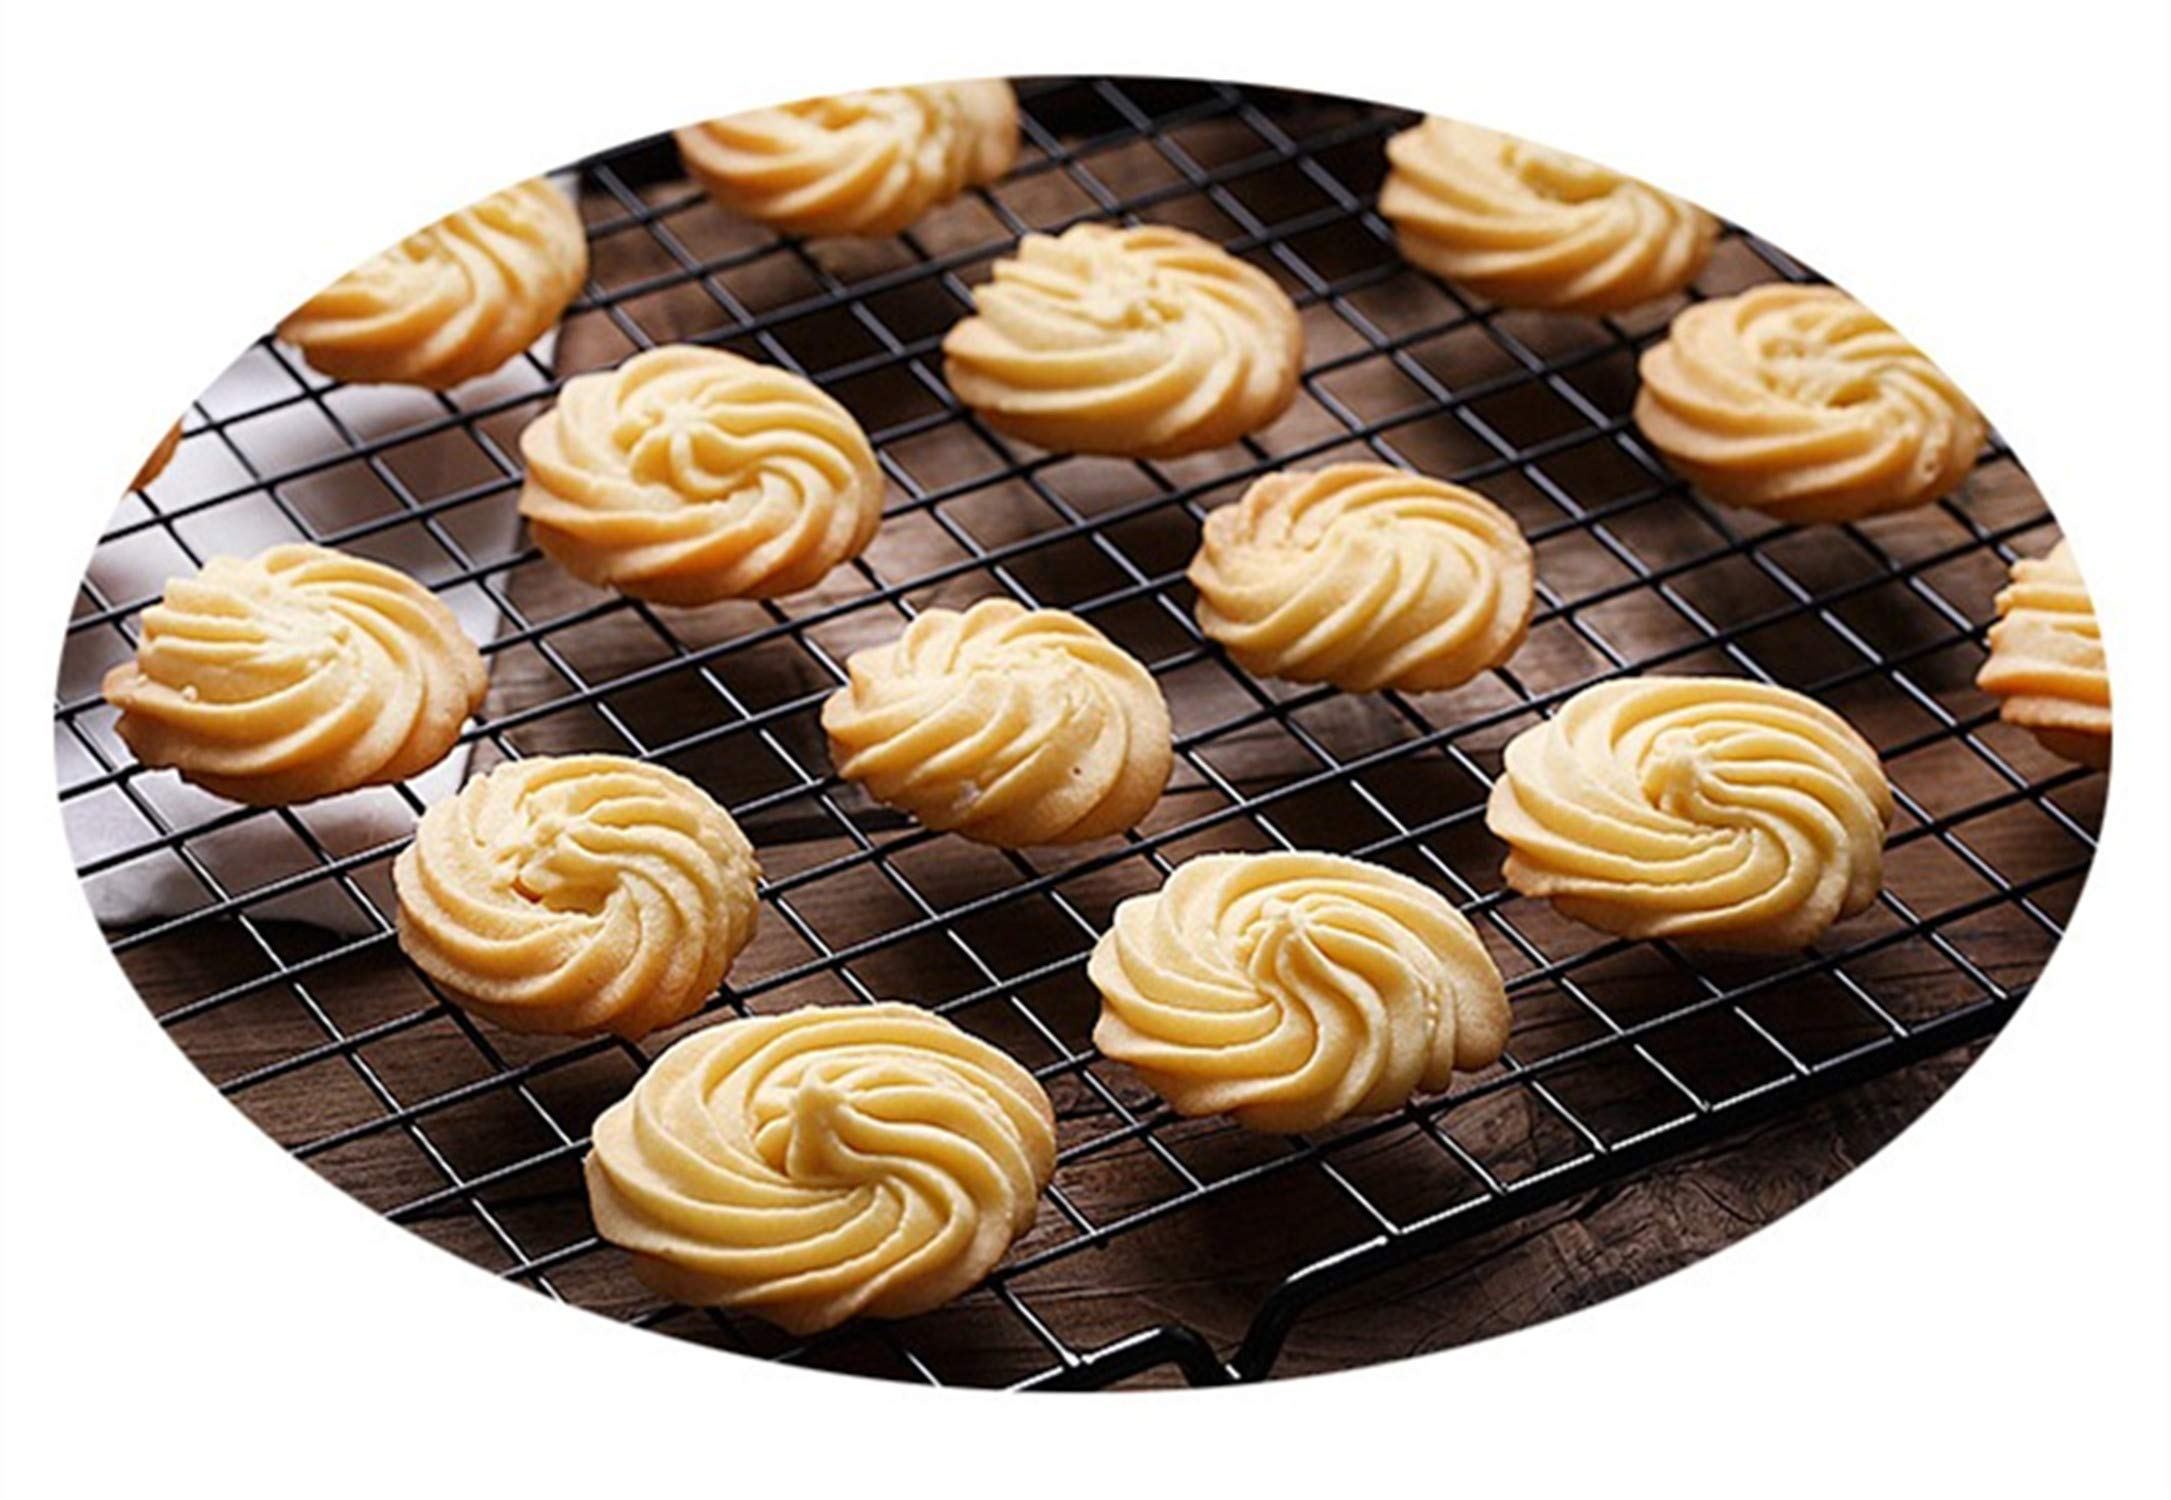 Mokpi Oven Safe Non-Stick Cooling Racks, Size 16''x10'',Thick Wire Baking Rack Heavy Duty Commercial Quality Rack (Set of 4) by Mokpi (Image #5)